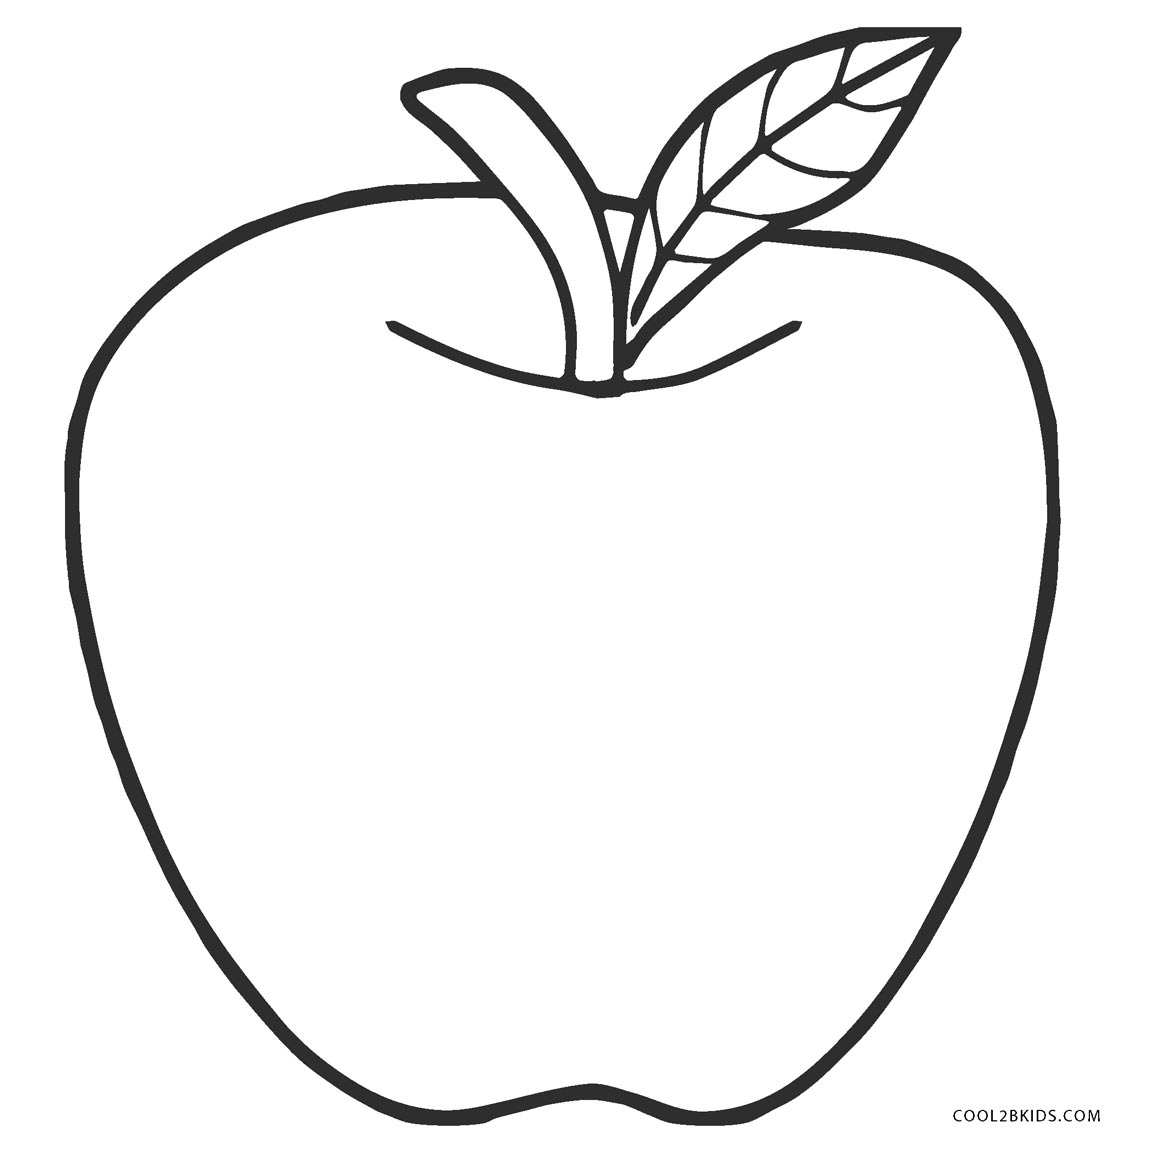 apple colouring images apple coloring page free printable coloring pages colouring images apple